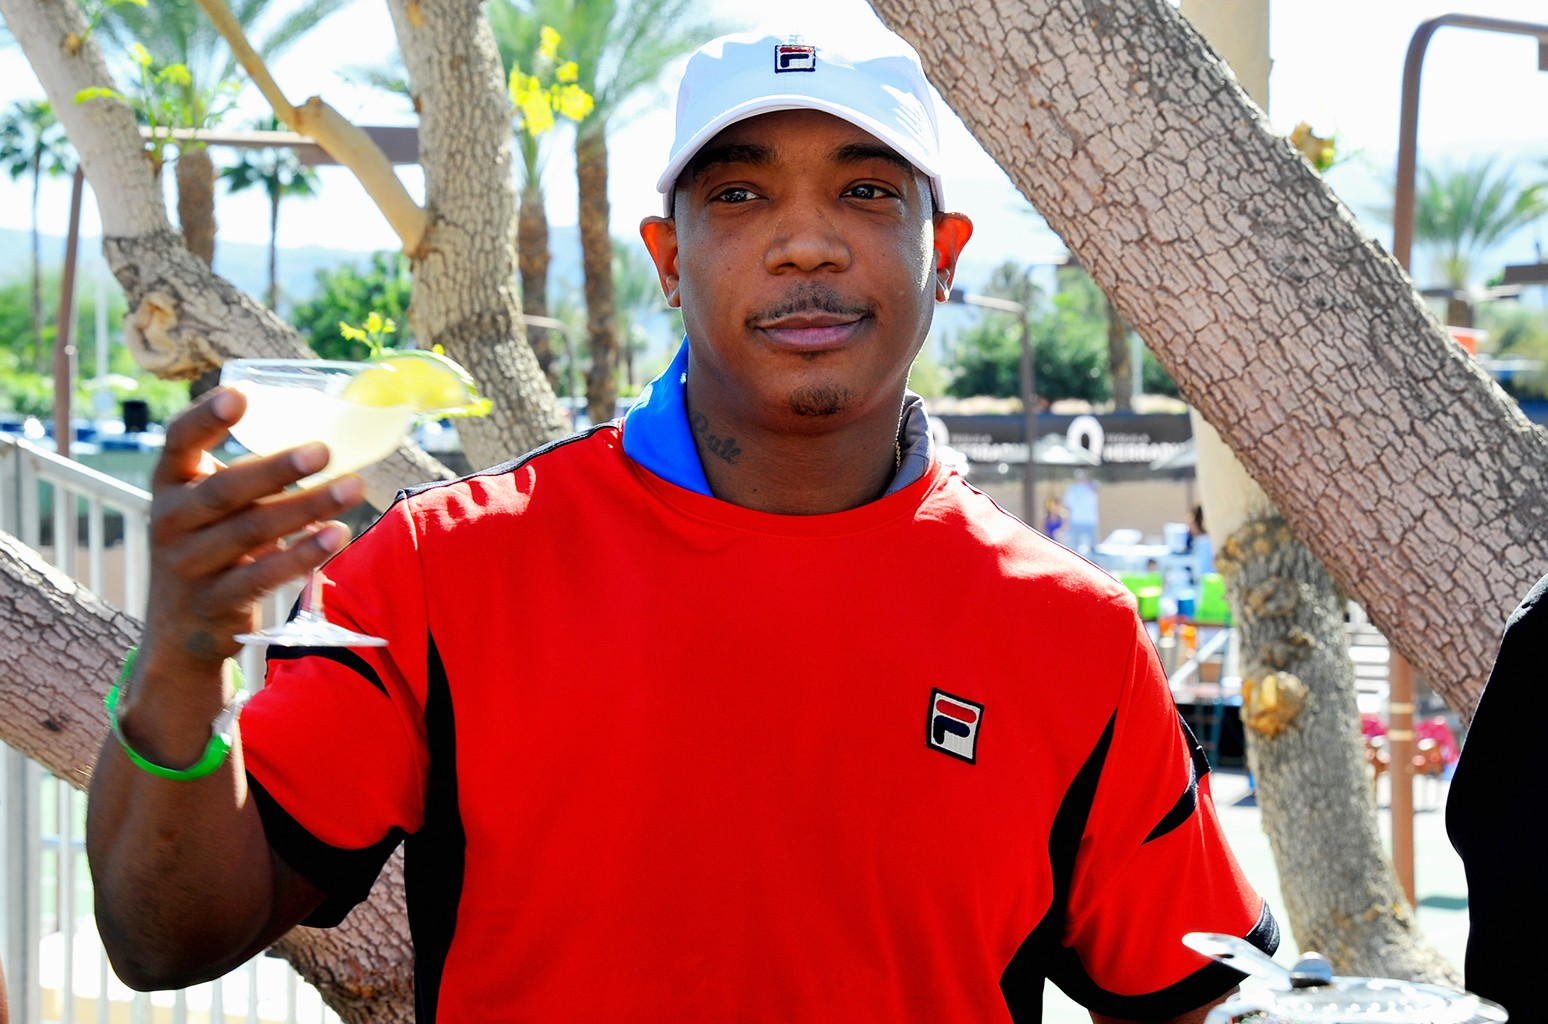 Ja Rule attends the 12th Annual Desert Smash Benefiting St. Jude Children's Research Hospital presented by Tequila Herradura on March 8, 2016 in Rancho Mirage, Calif.